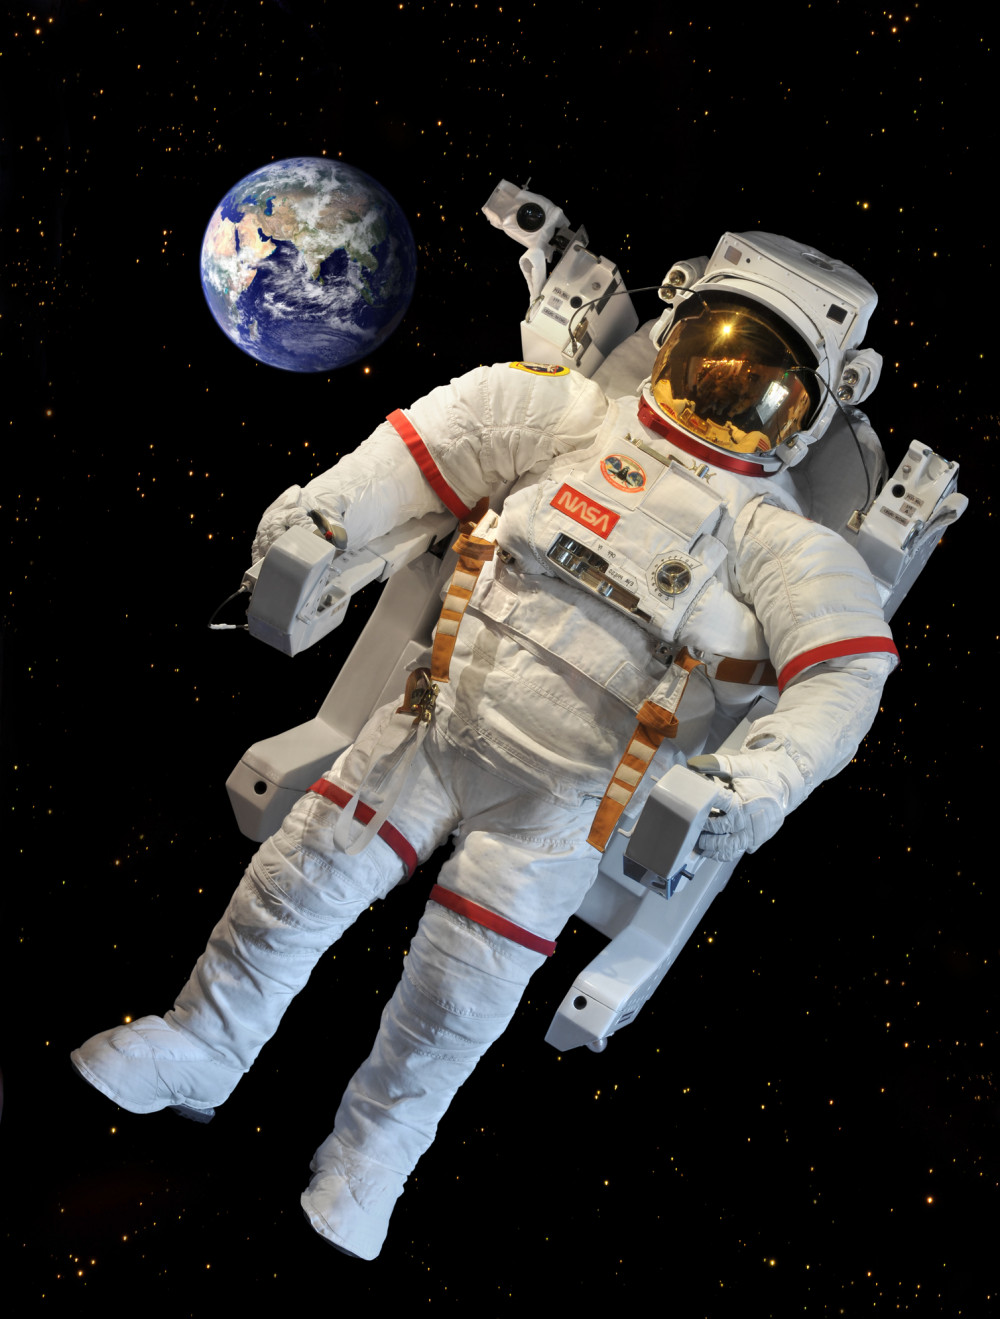 astronaut in space rocket - photo #44